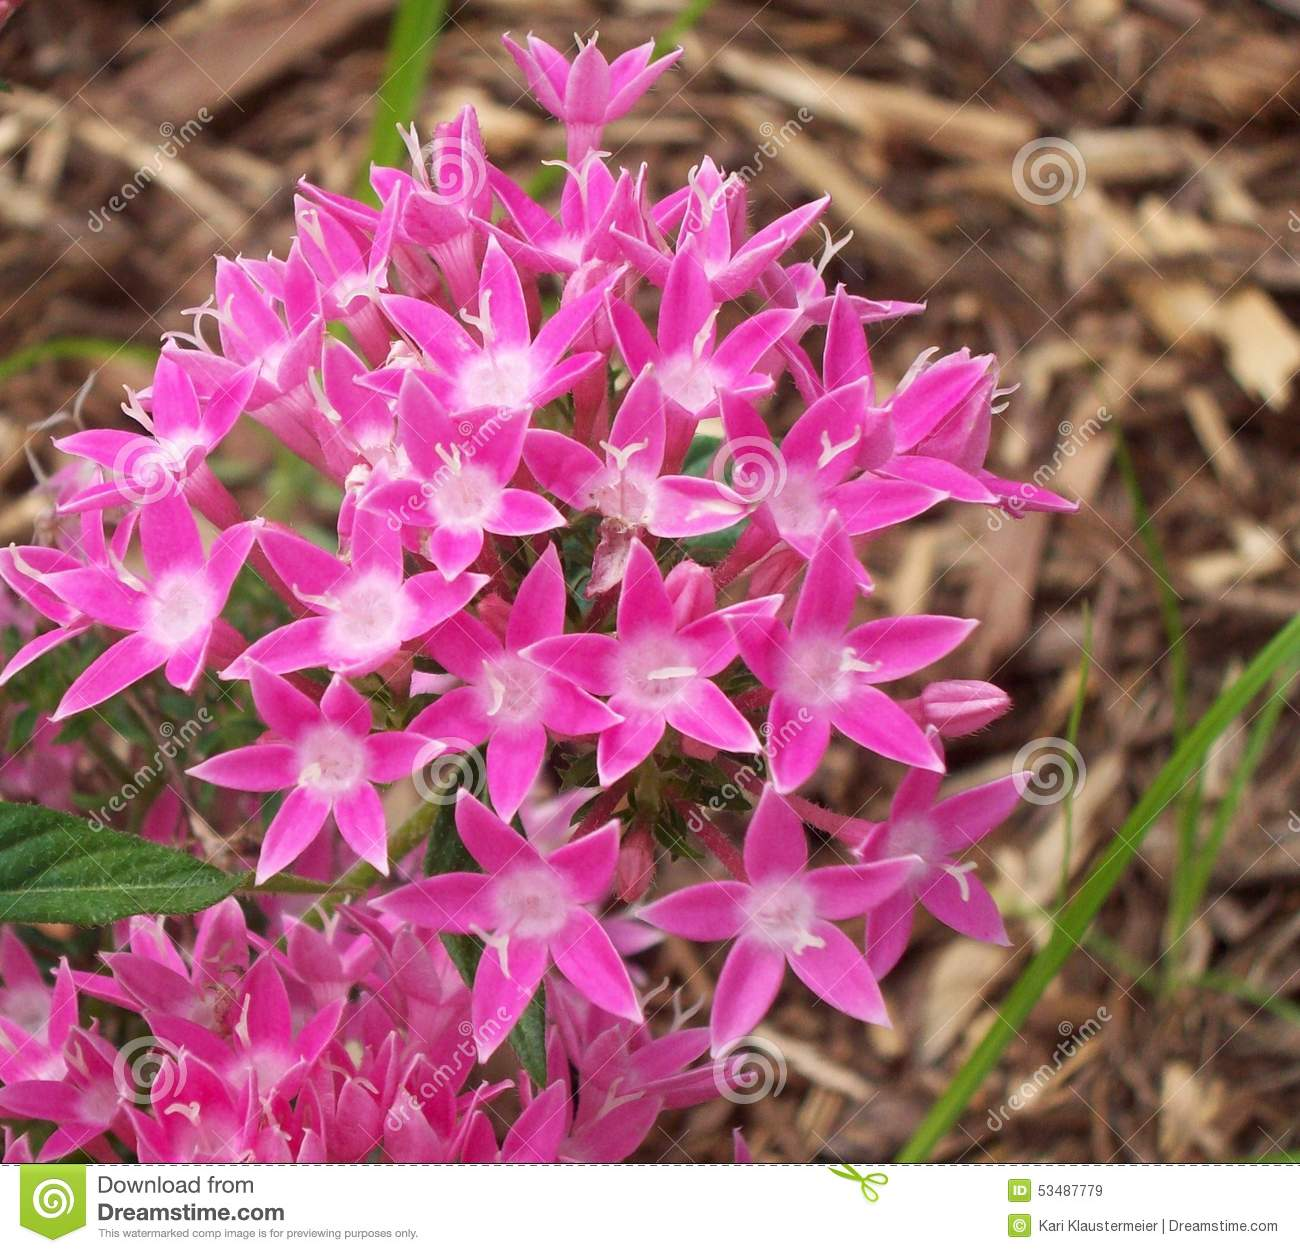 Pink Star Flowers Over Mulch Stock Image Image Of Garden Cluster